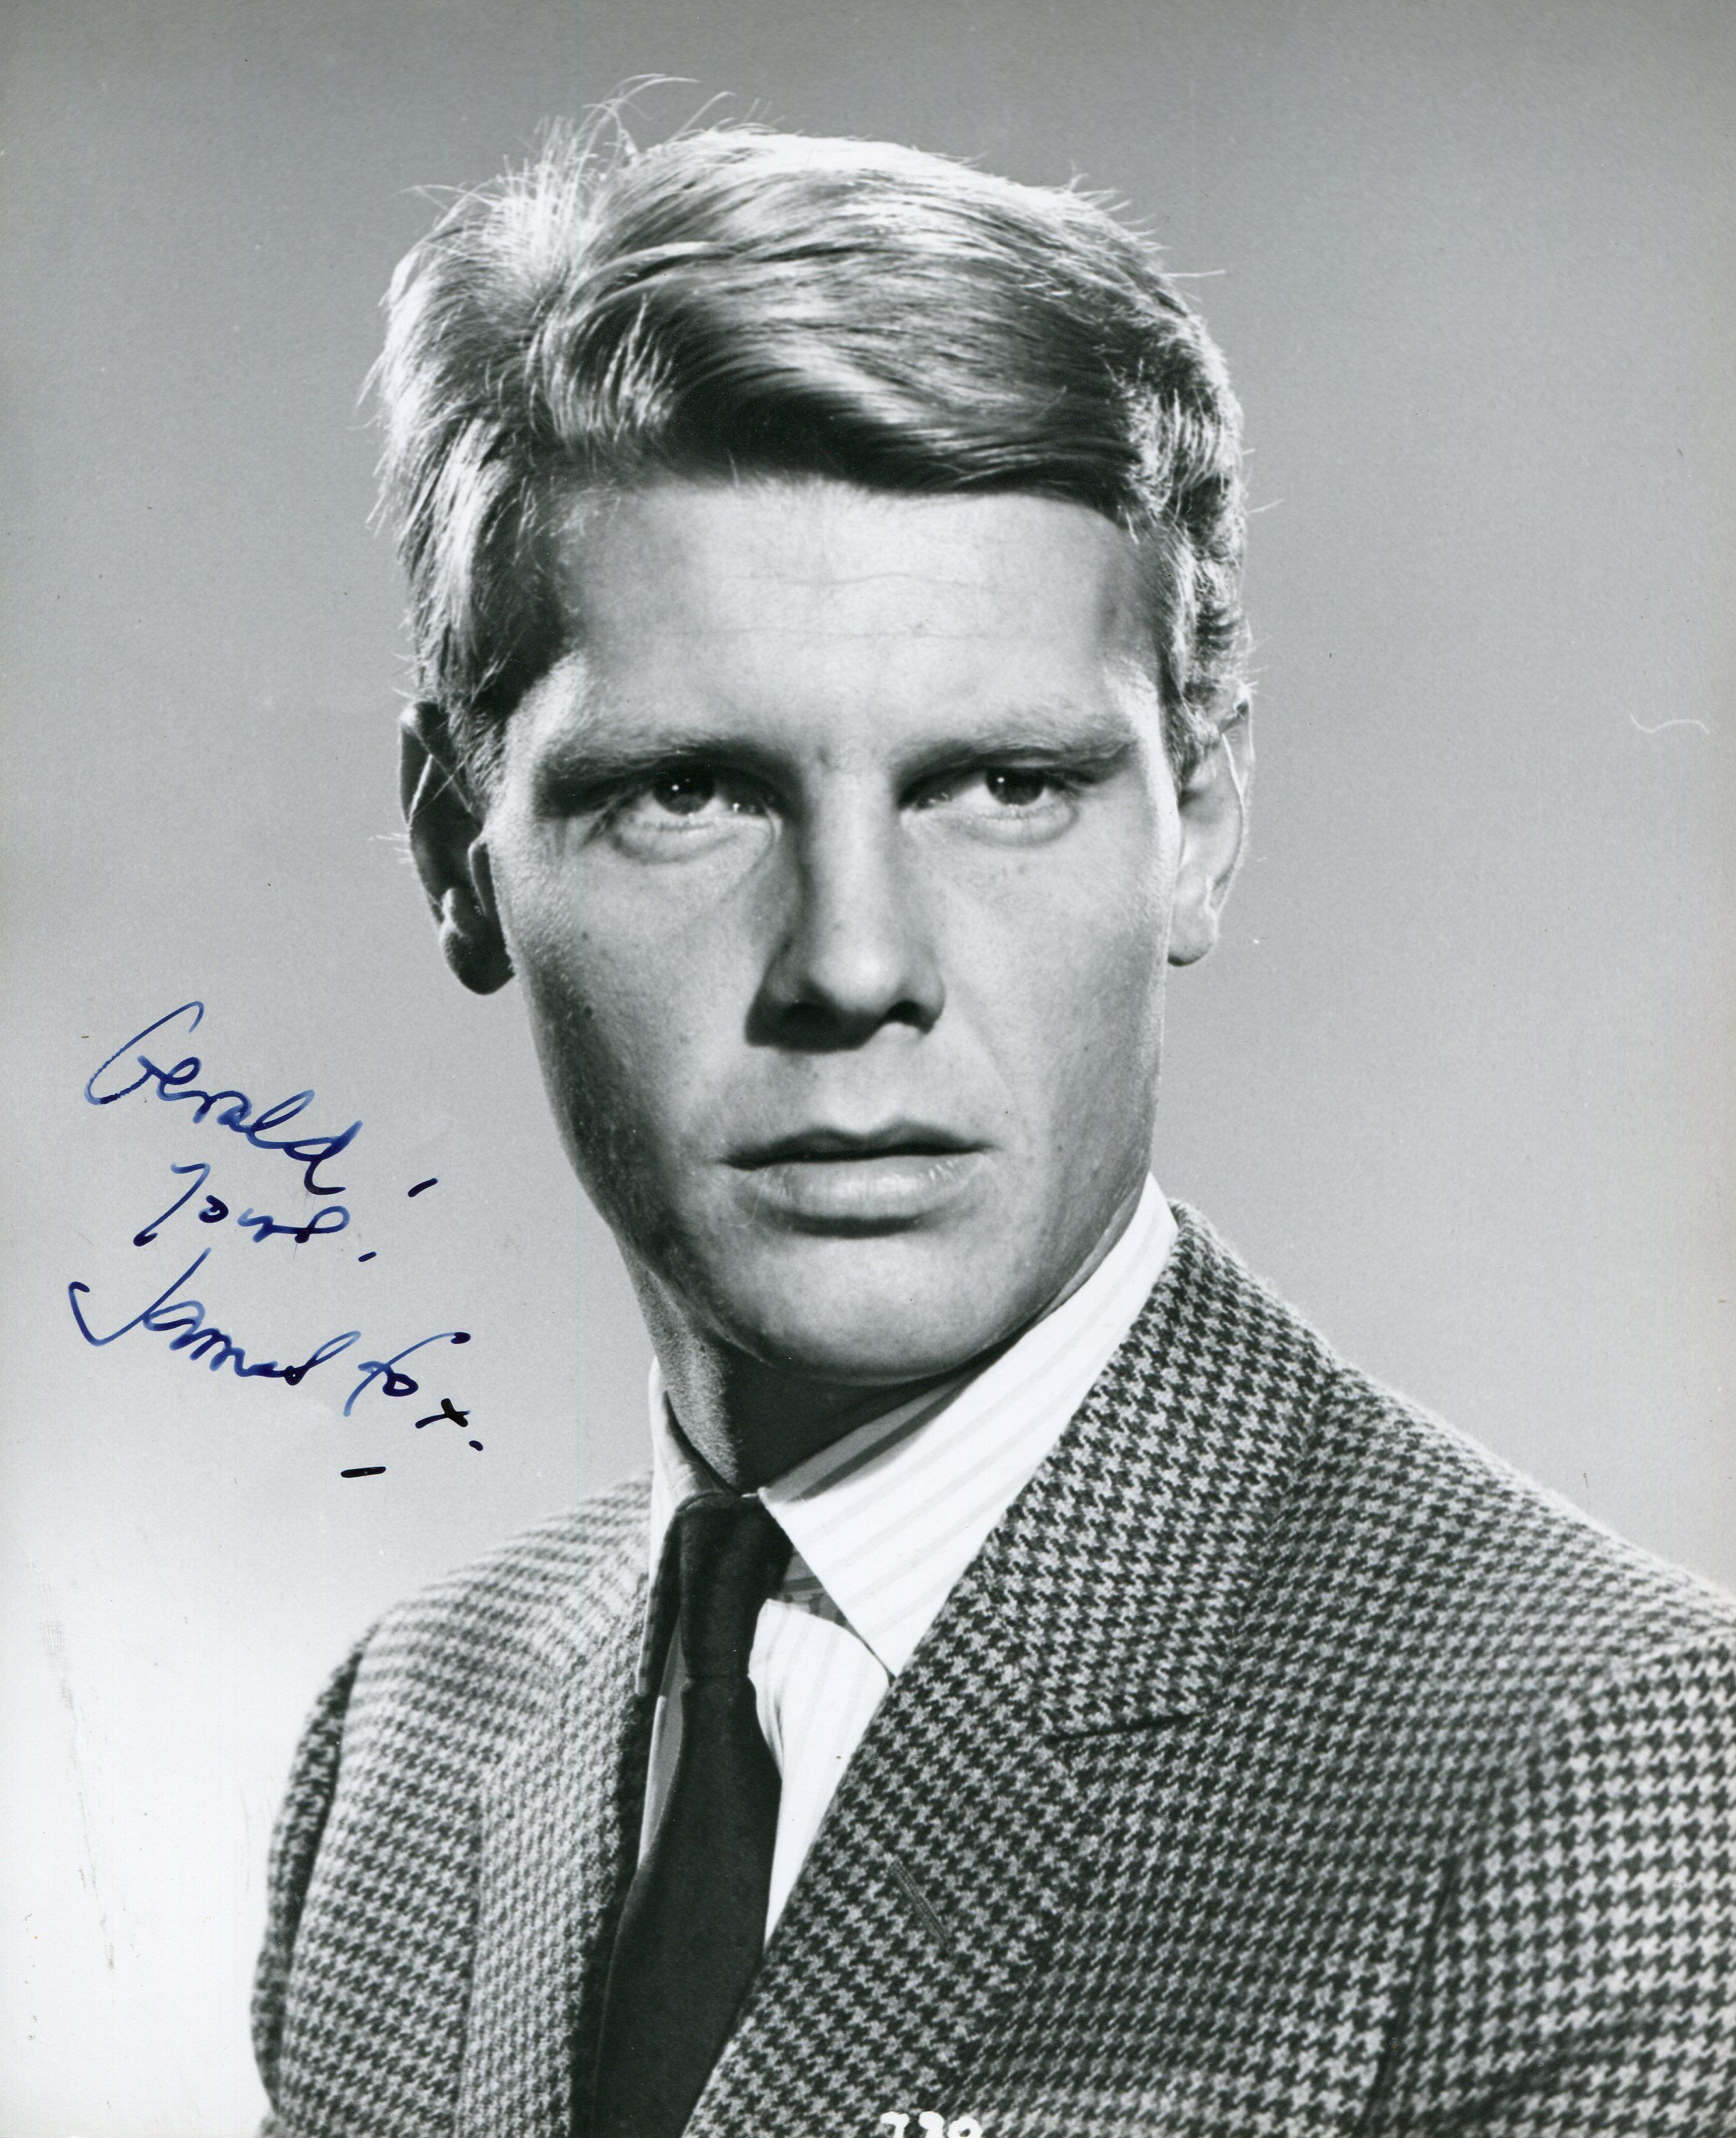 James Fox (born 1939)